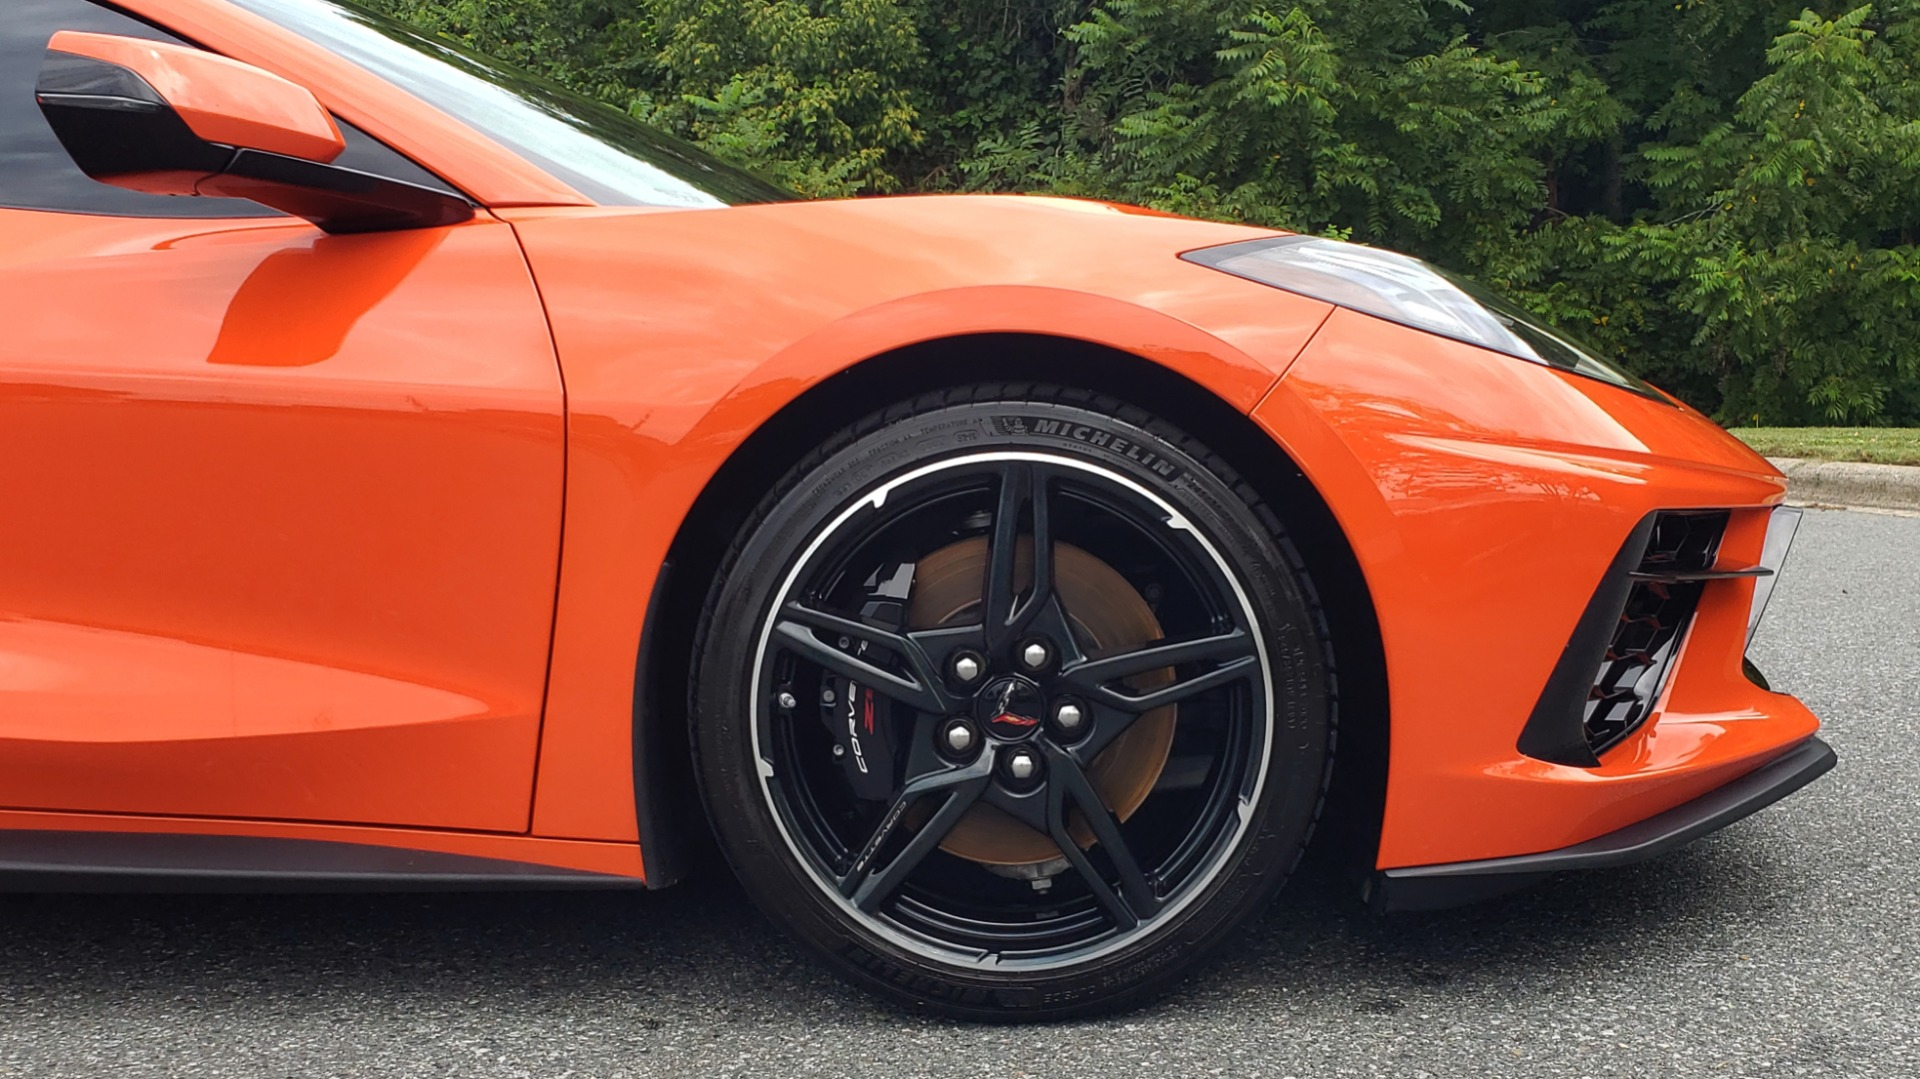 Used 2020 Chevrolet CORVETTE C8 STINGRAY 2LT / 6.2L V8 / 8-SPD AUTO / NAV / BOSE / REARVIEW / DATA RECOR for sale Sold at Formula Imports in Charlotte NC 28227 86